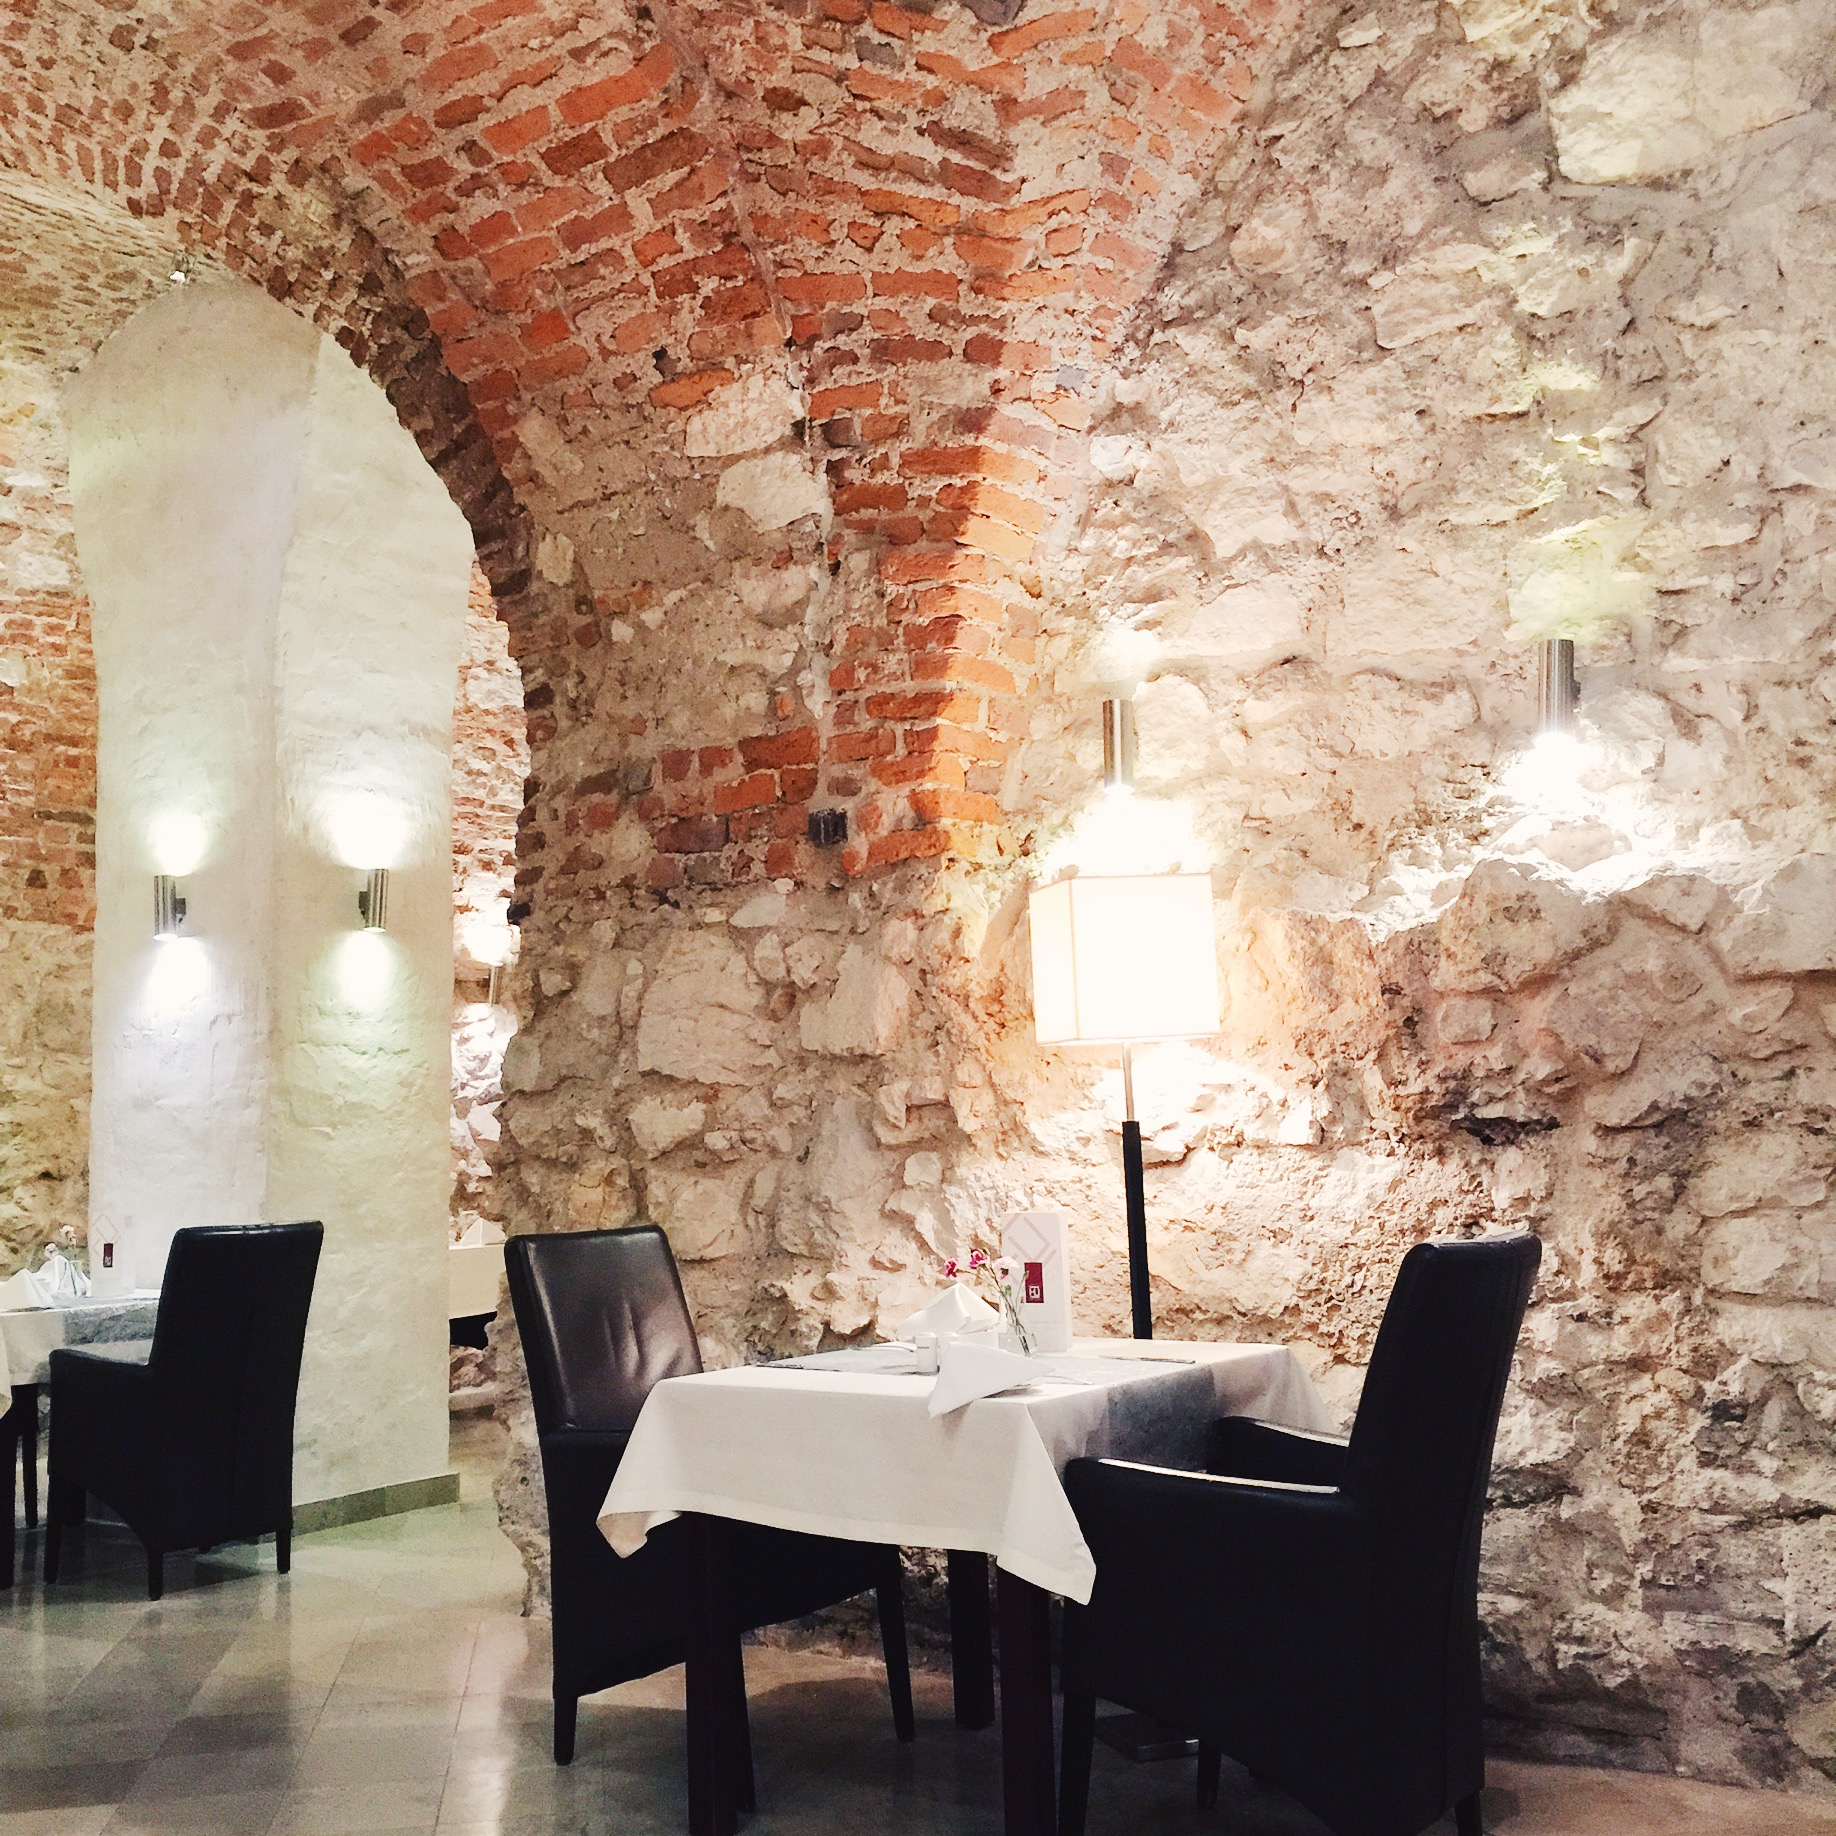 Hotel Unicus, Krakow | The Style Scribe